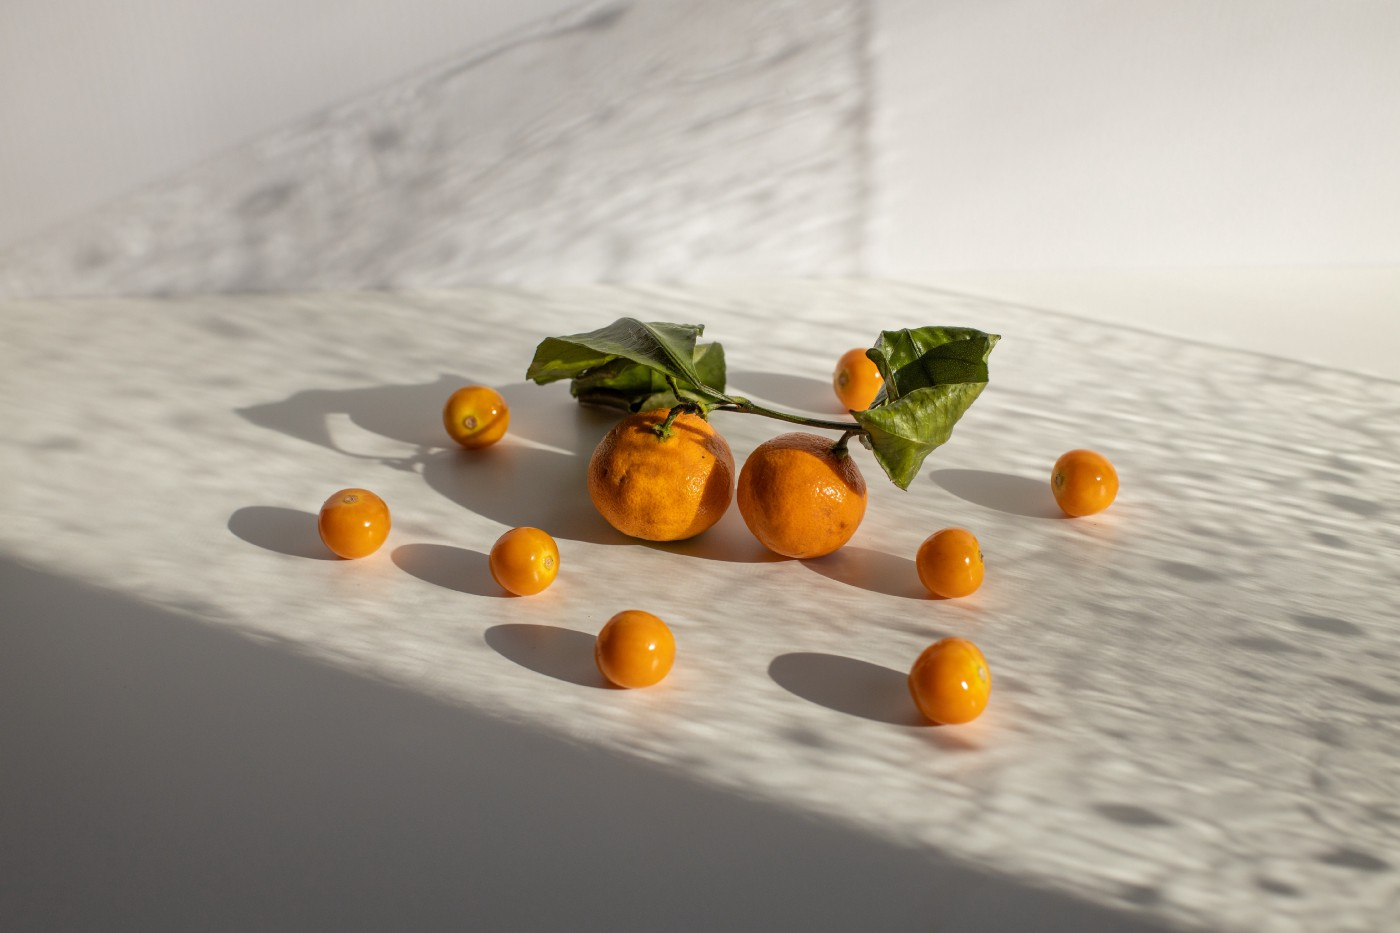 tangerines and groundcherries scattered on white surface in daylight